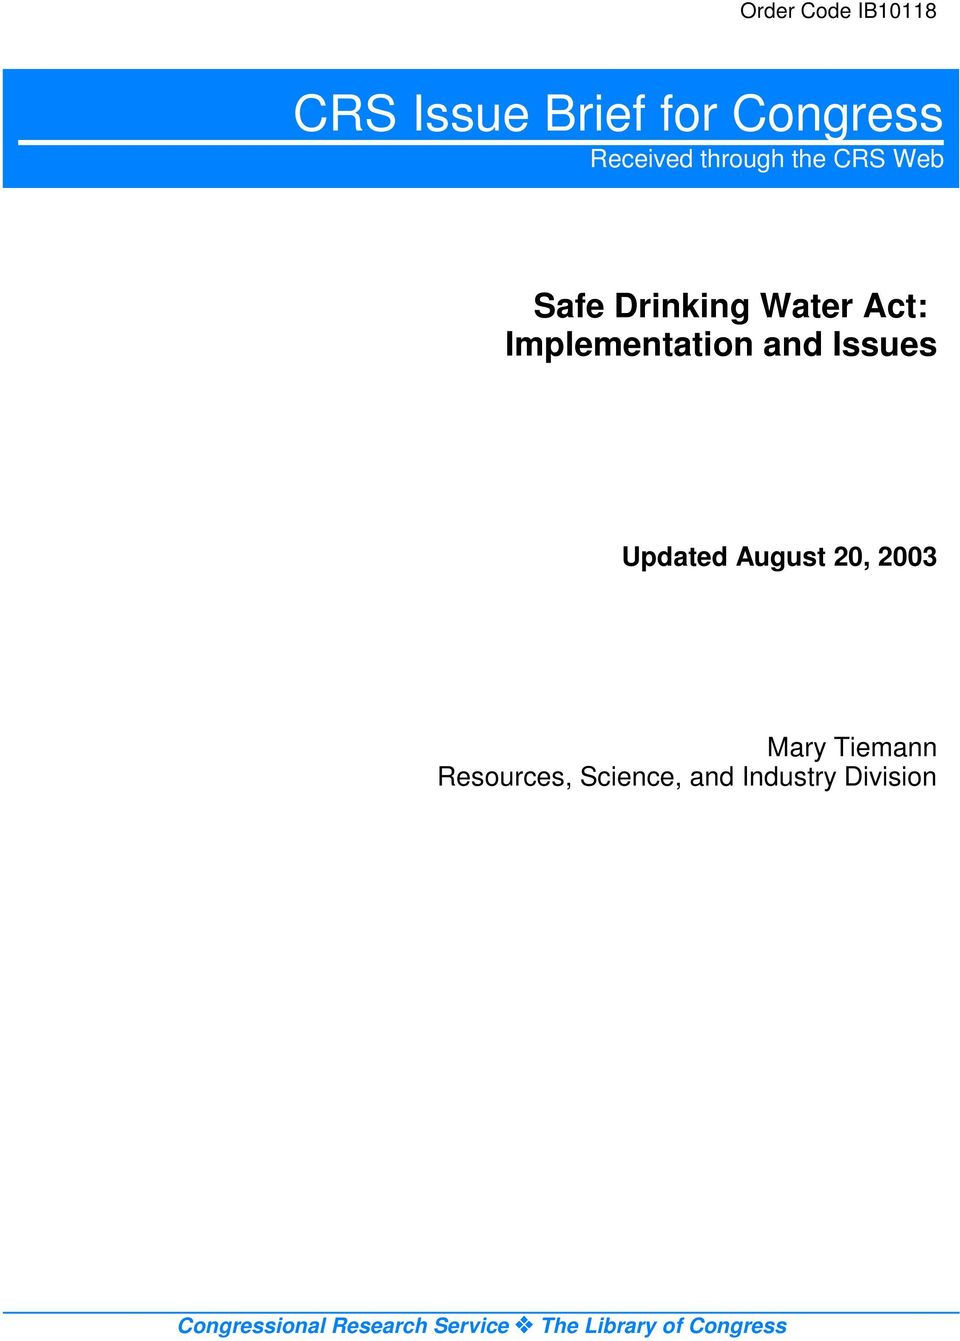 an analysis of the safe drinking water act sdwa The safe drinking water act (sdwa) was established by congress in 1974 to  protect human health from contaminants in drinking water, and to prevent.